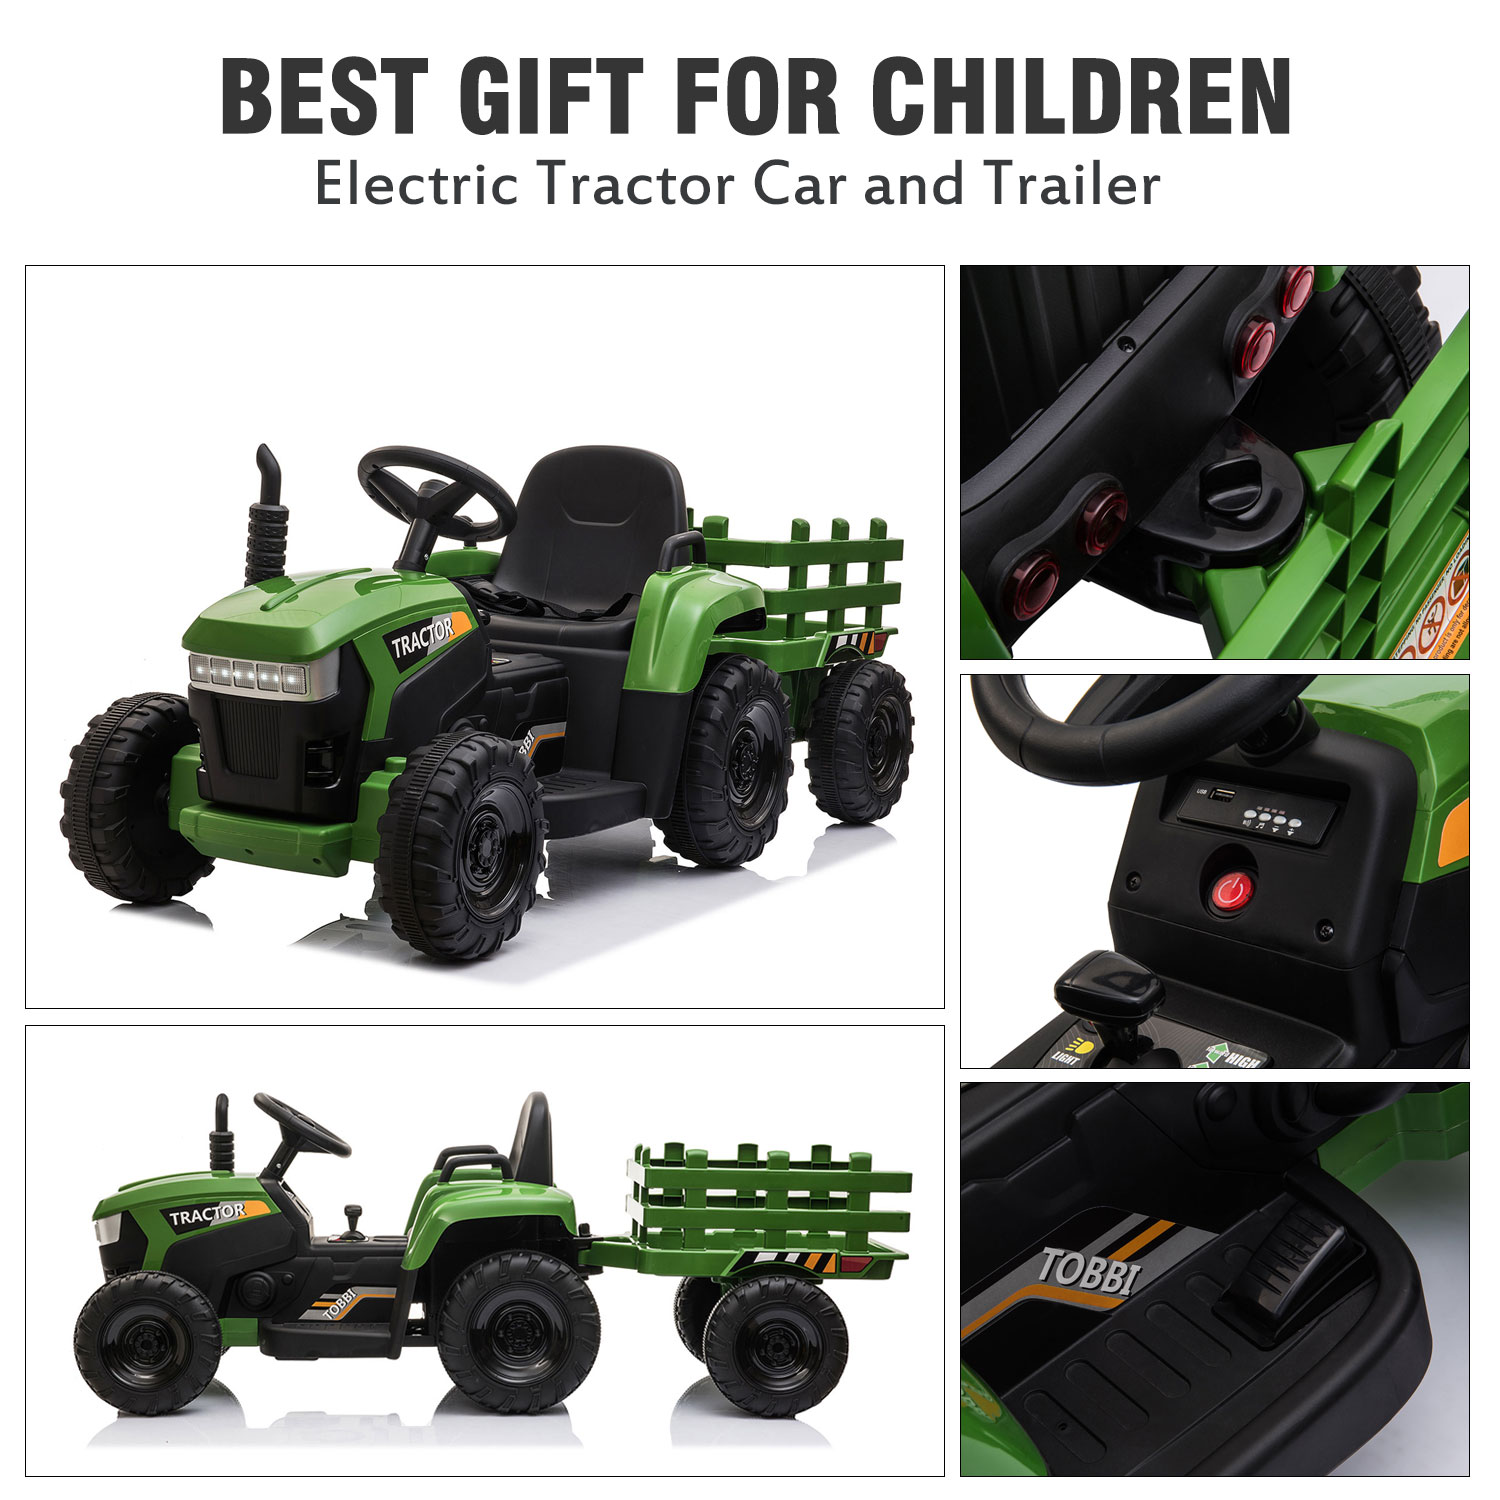 12V Electric Kids Ride-On Tractor with Trailer, Dark Green 2 12